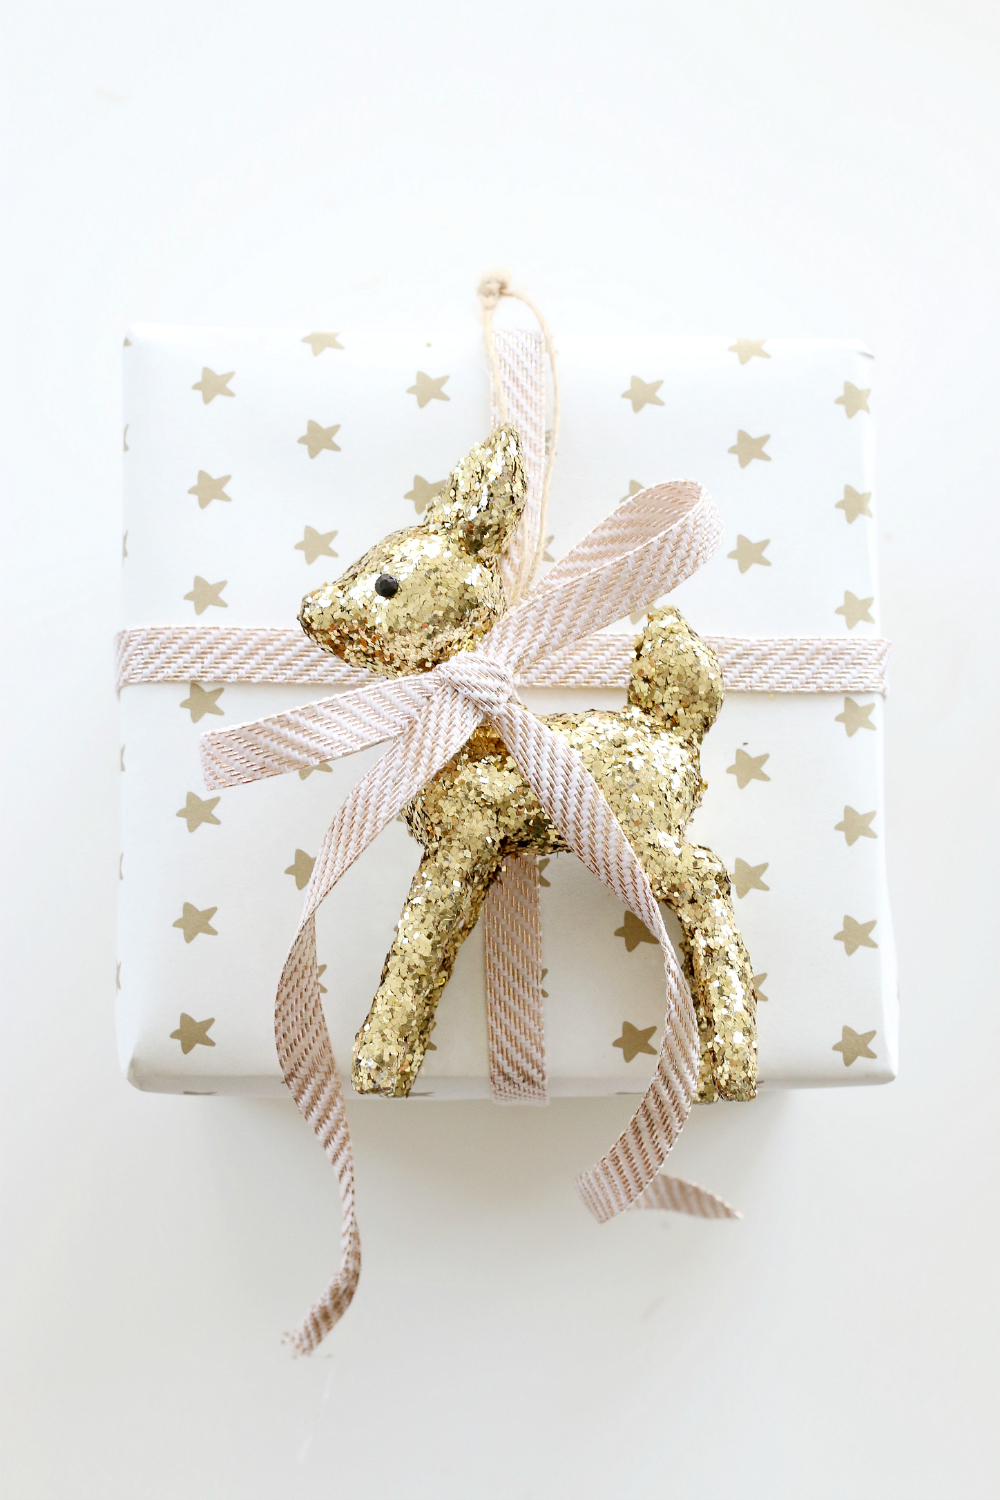 Elegant White, Pink & Gold Gift Wrapping With Gold Reindeer Toy